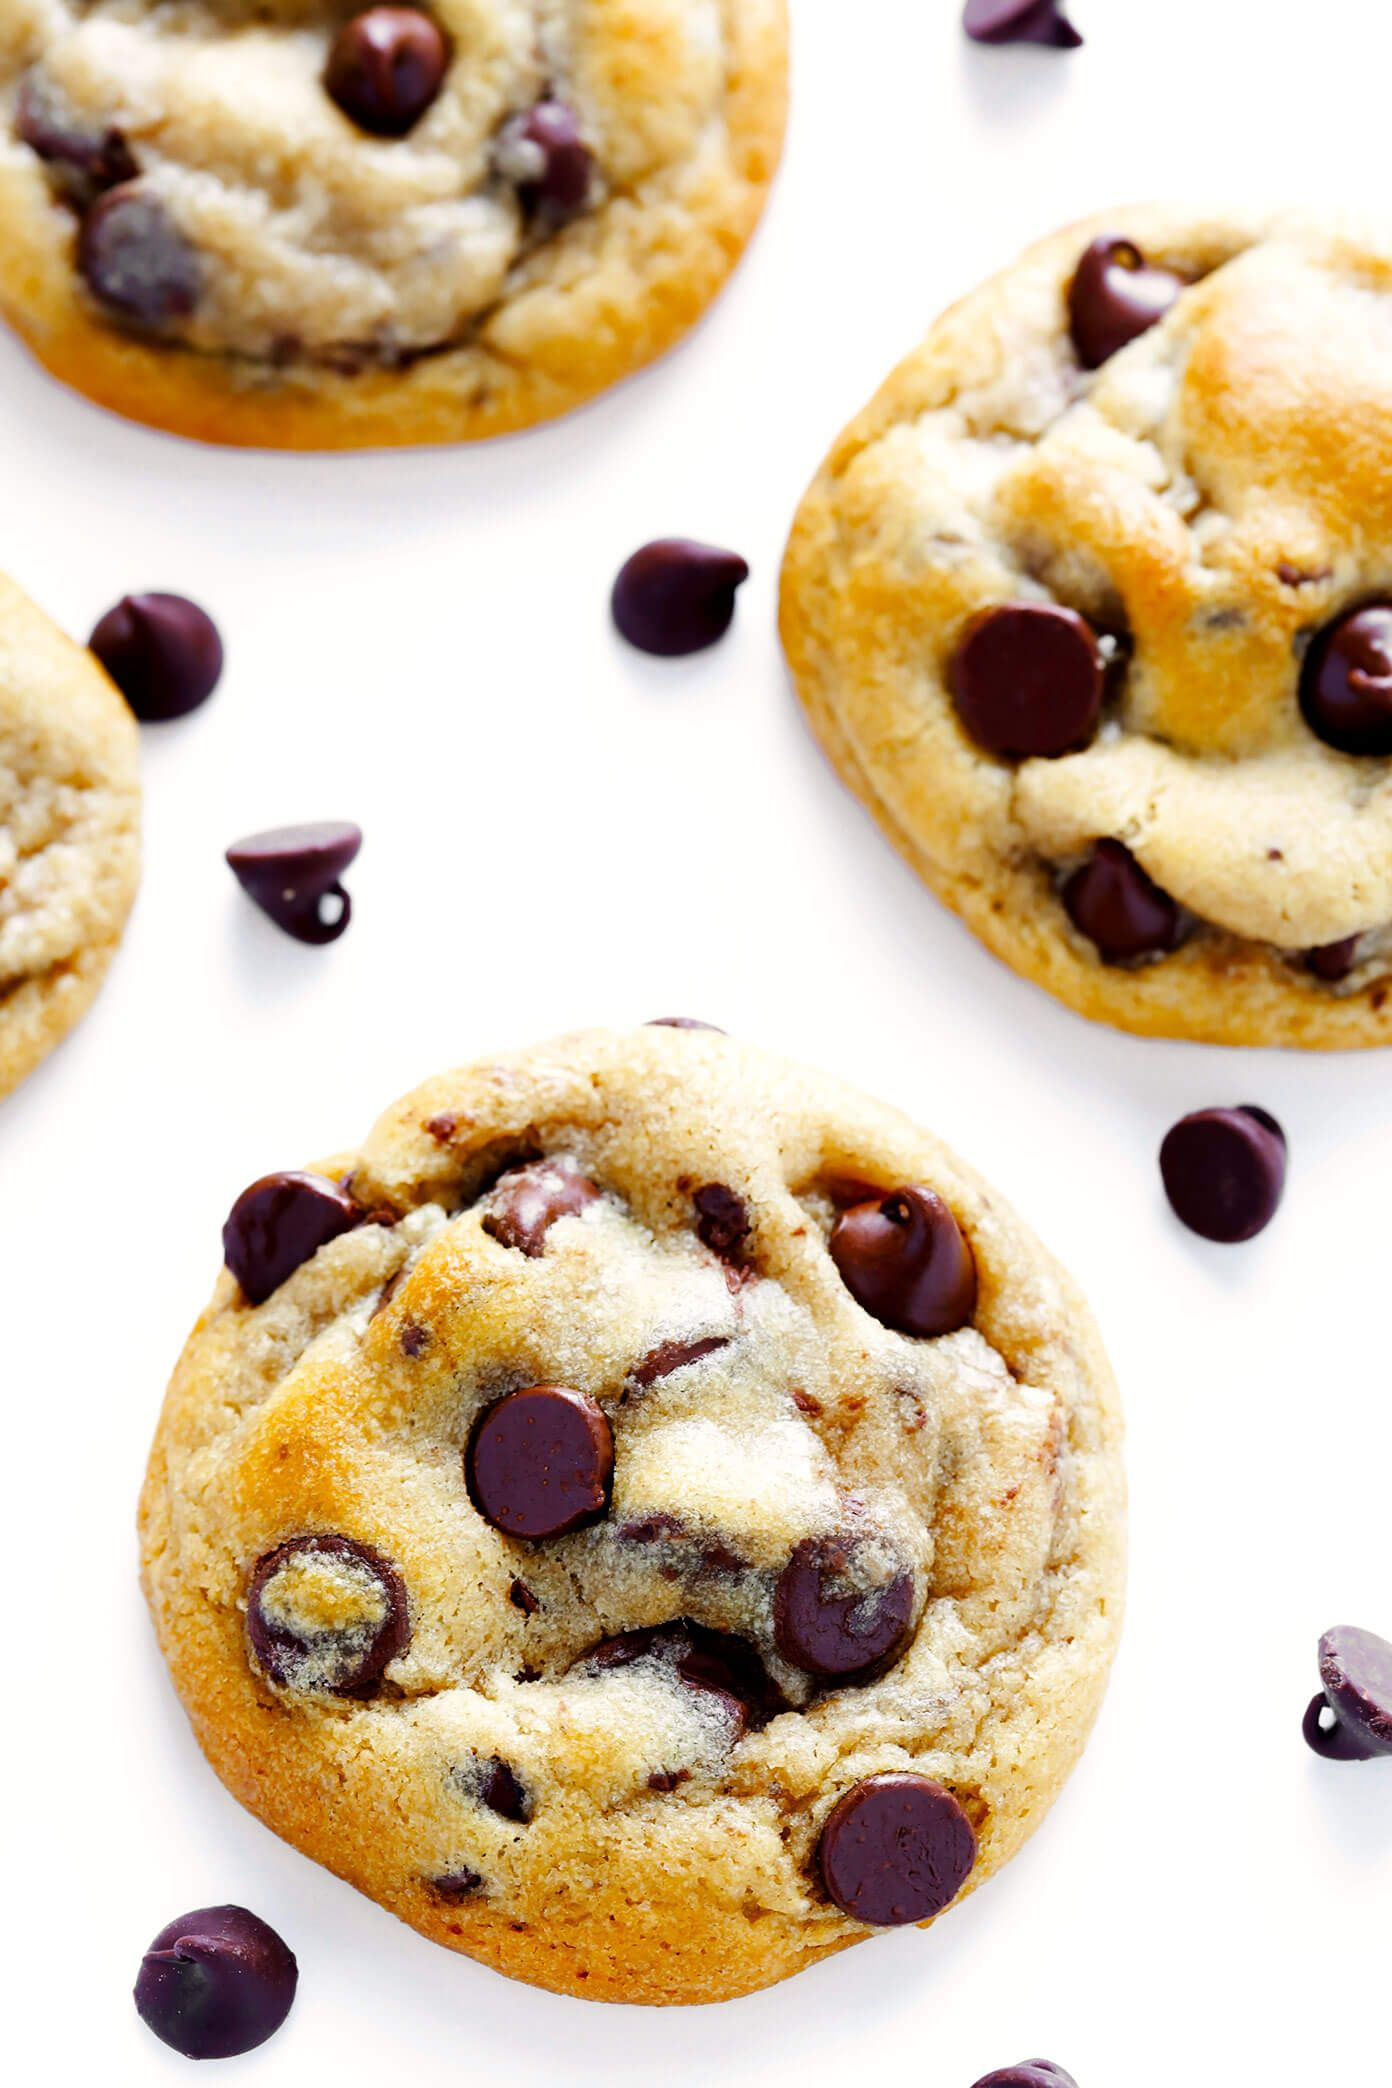 The BEST Chocolate Chip Cookies My all-time favorite chocolate chip cookie recipe! These chocolate chip cookies are perfectly soft and chewy and buttery, loaded up with semisweet chocolate chips, and completely irresistible. | Gimme Some Oven